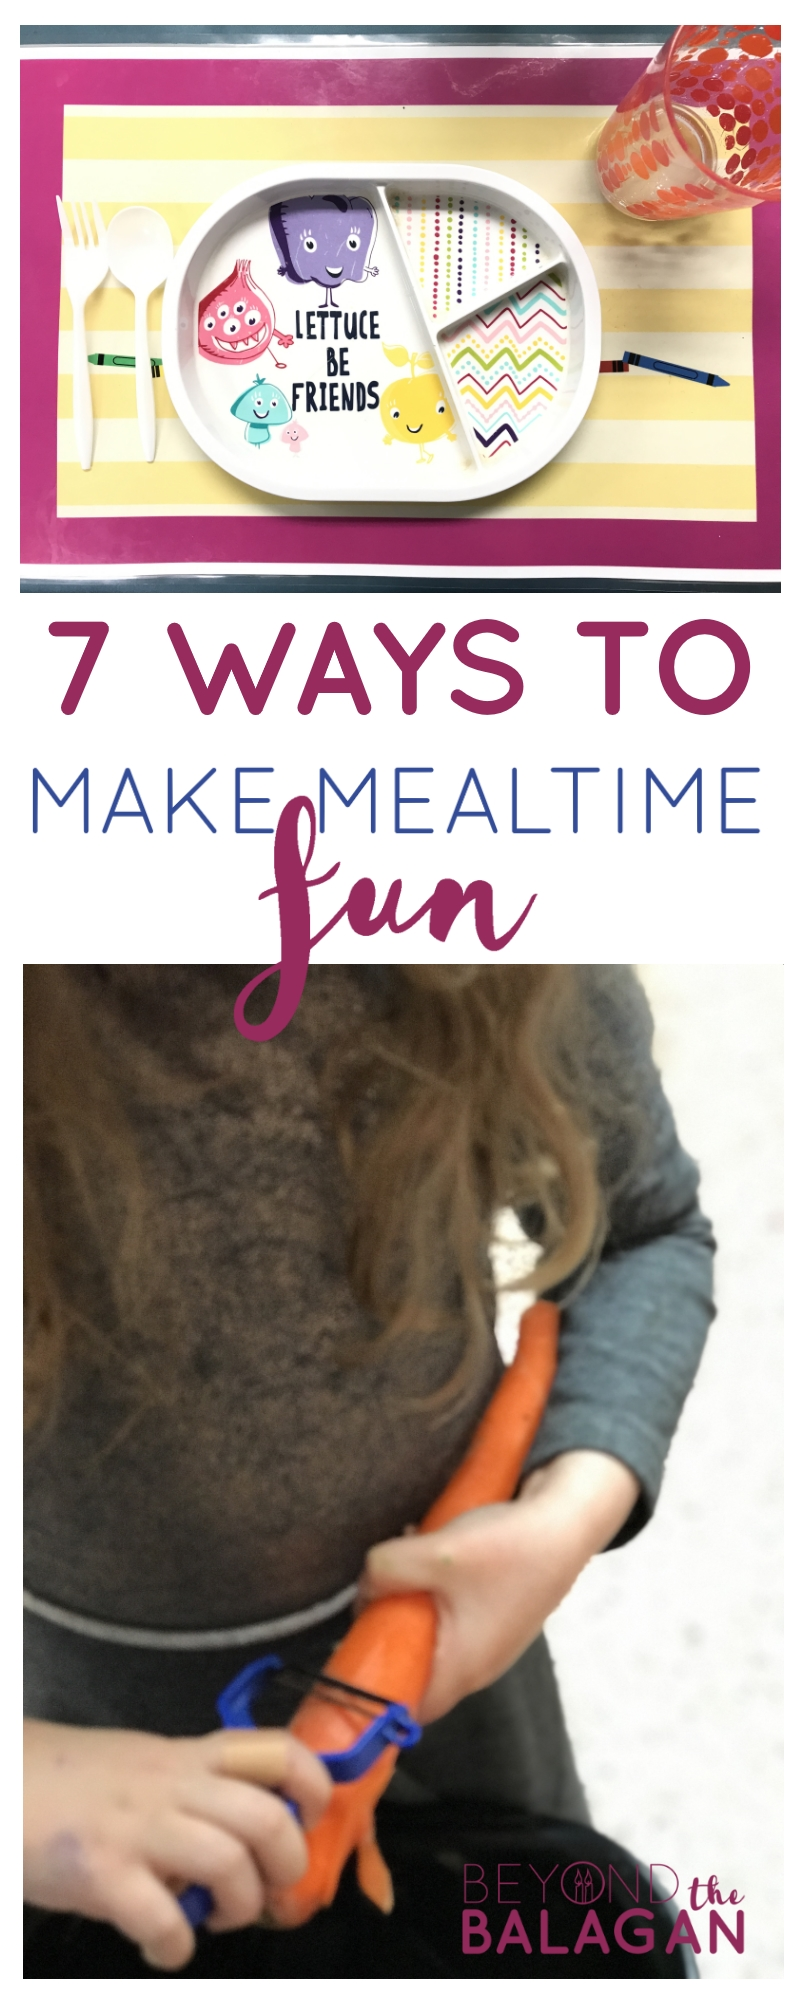 Make family mealtime fun with these 7 easy ideas. Family dinners and mealtimes can be fun and enjoyable if you do just a few things on this list! #mealtime #familydinner #kidfriendlymeals